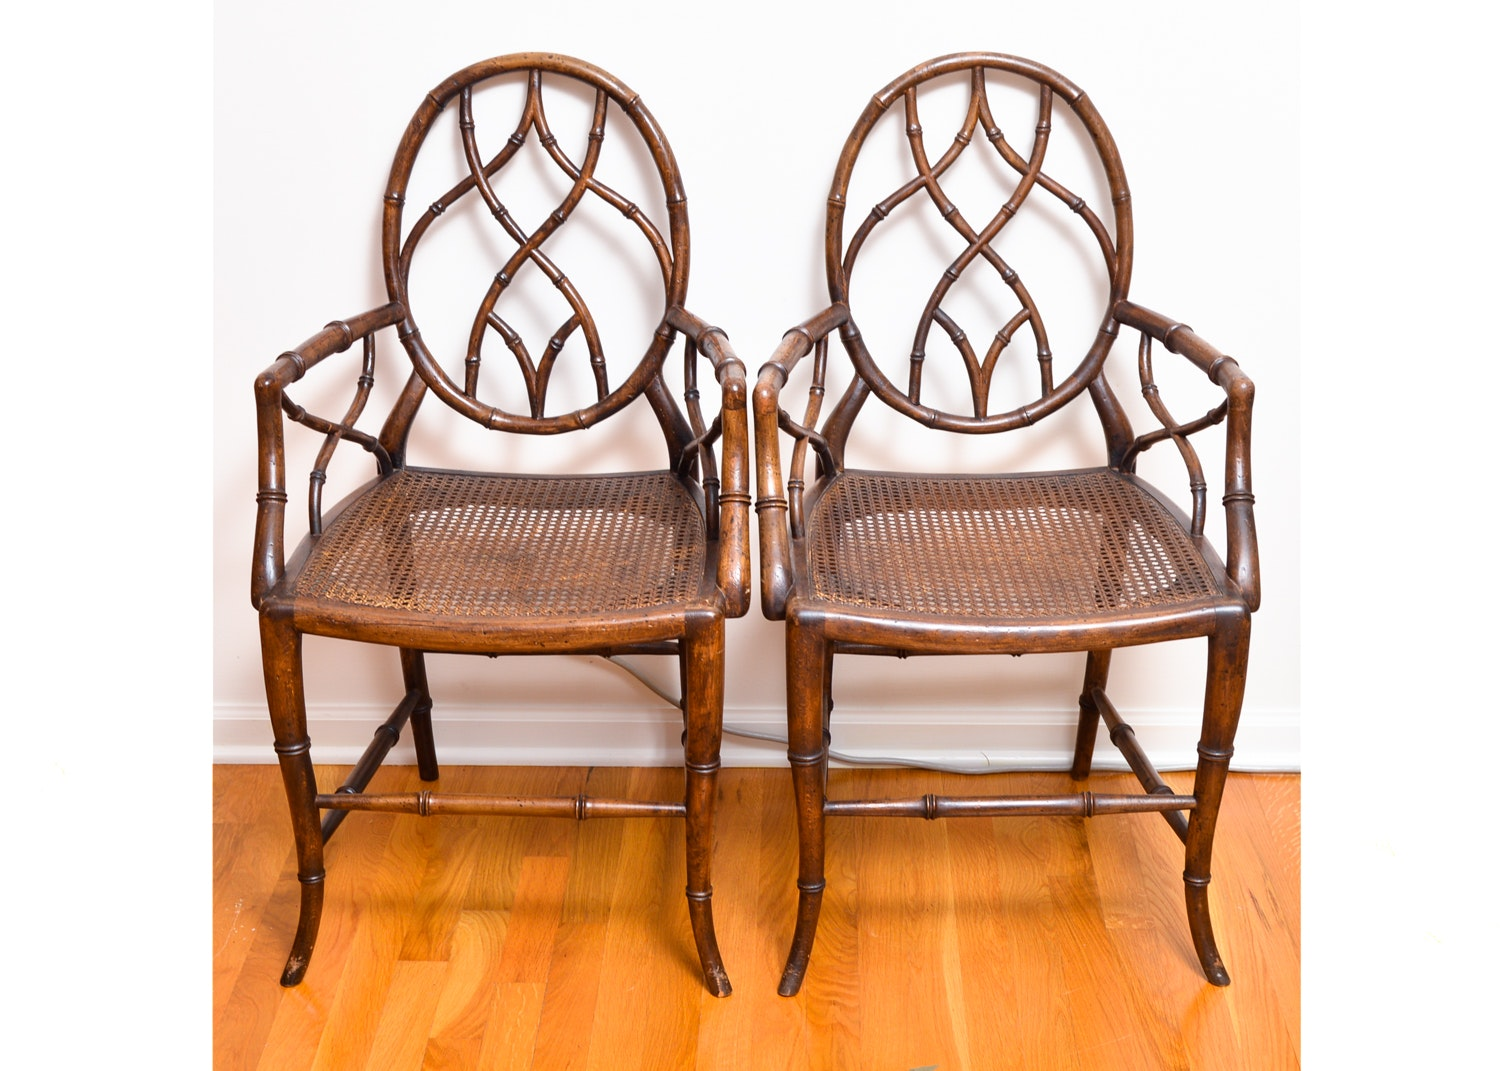 Bamboo Style Armchairs with Cane Seats